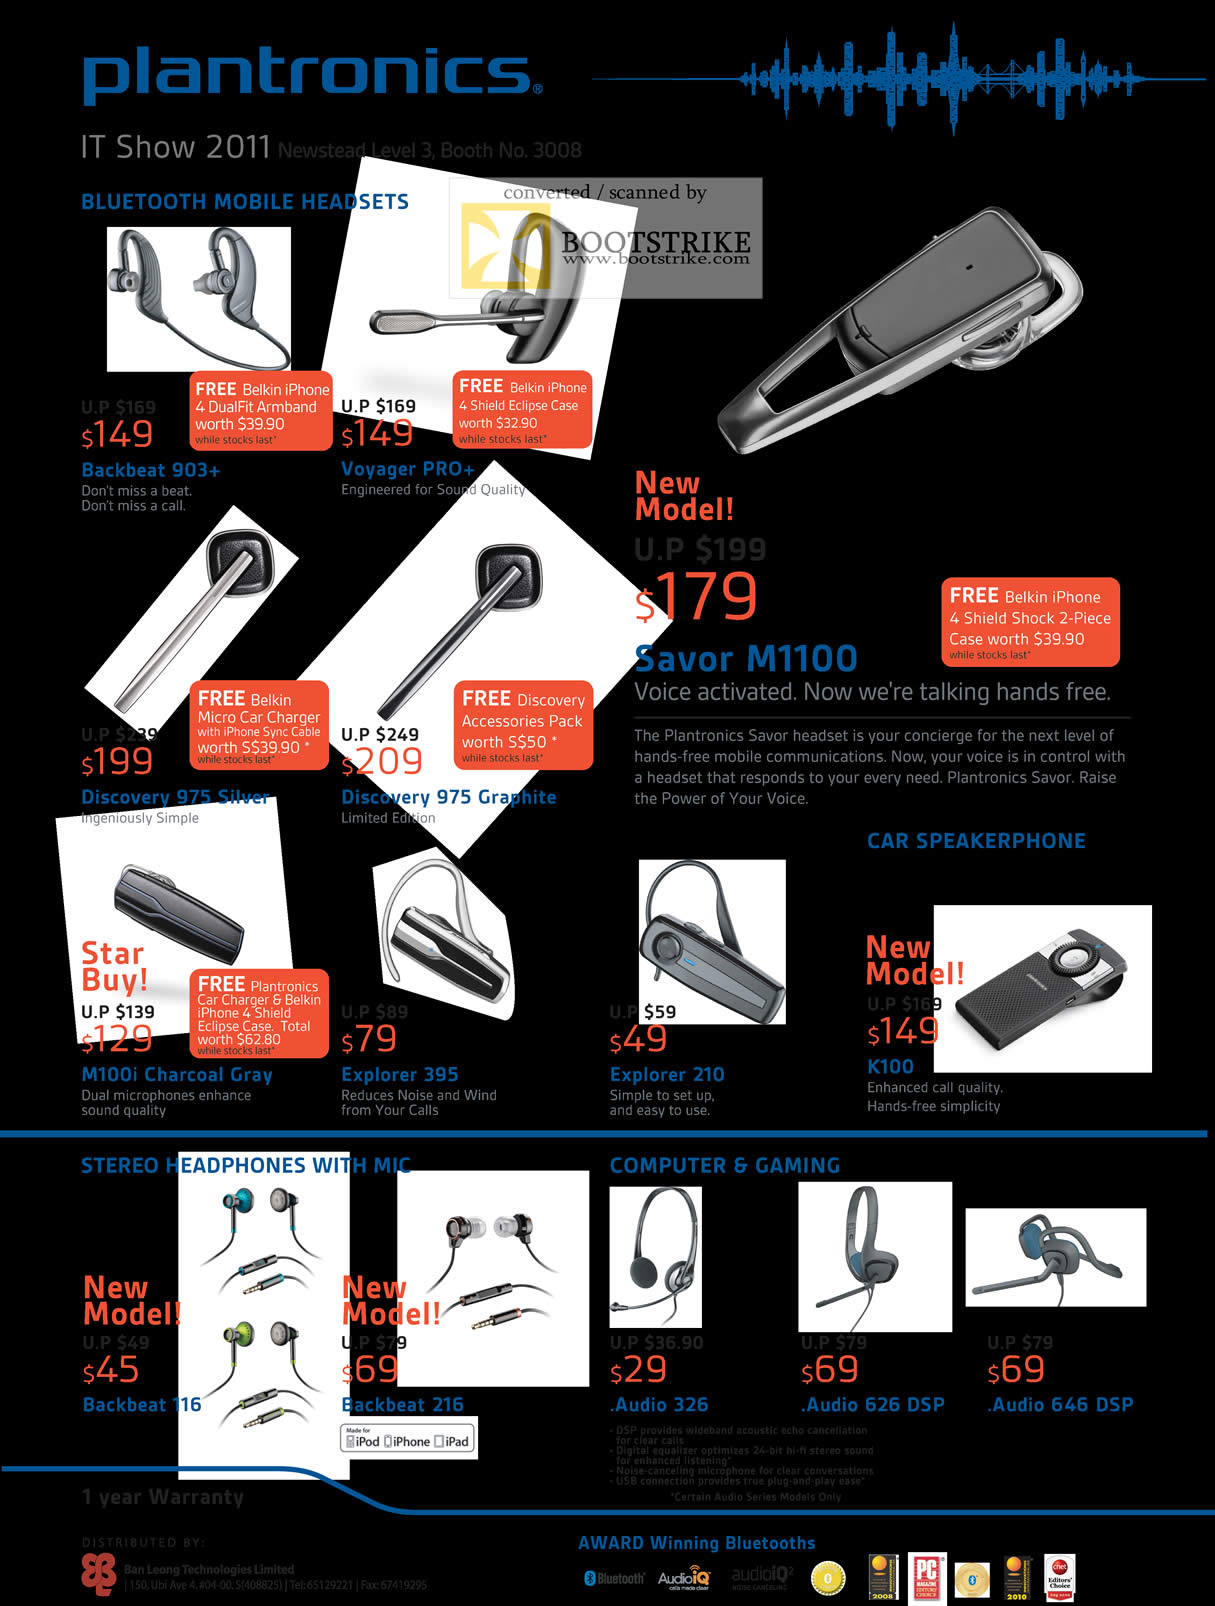 IT Show 2011 price list image brochure of Newstead Plantronics Bluetooth Headsets Backbeat 903 Voyager Pro Savor M1100 Discovery 975 Silver Graphite M100i Explorer Audio DSP